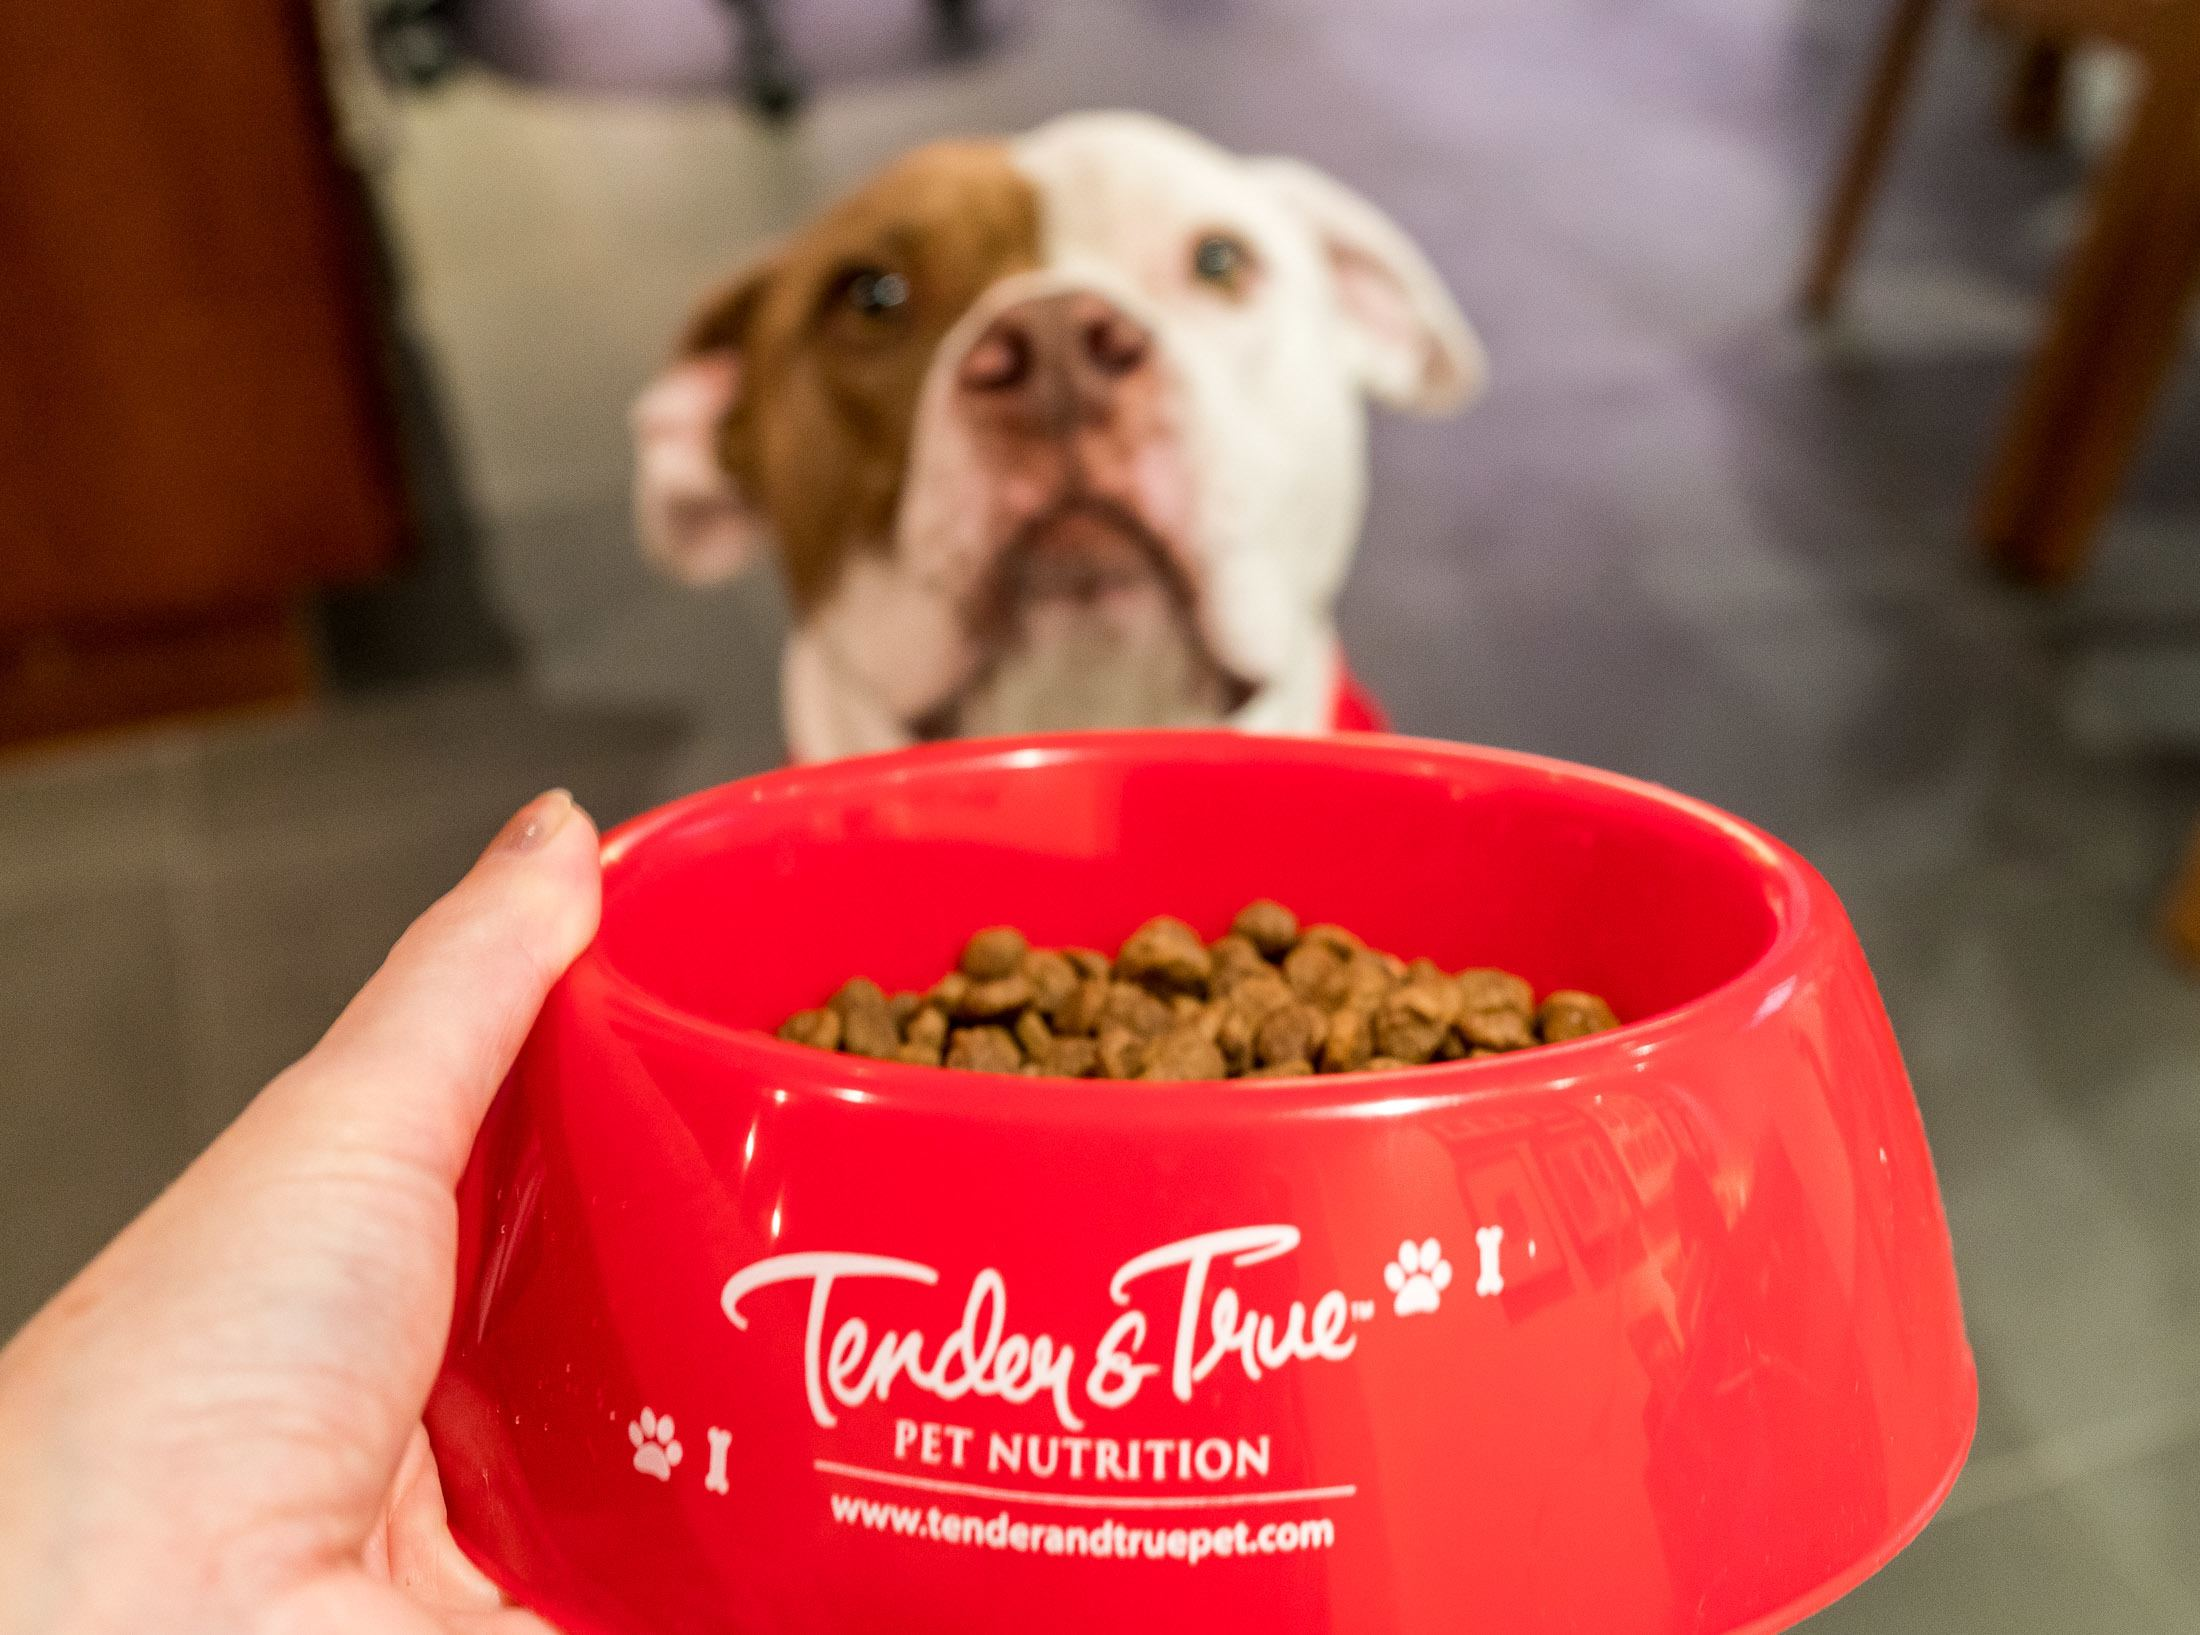 Tender and True is considered a pet superfood.